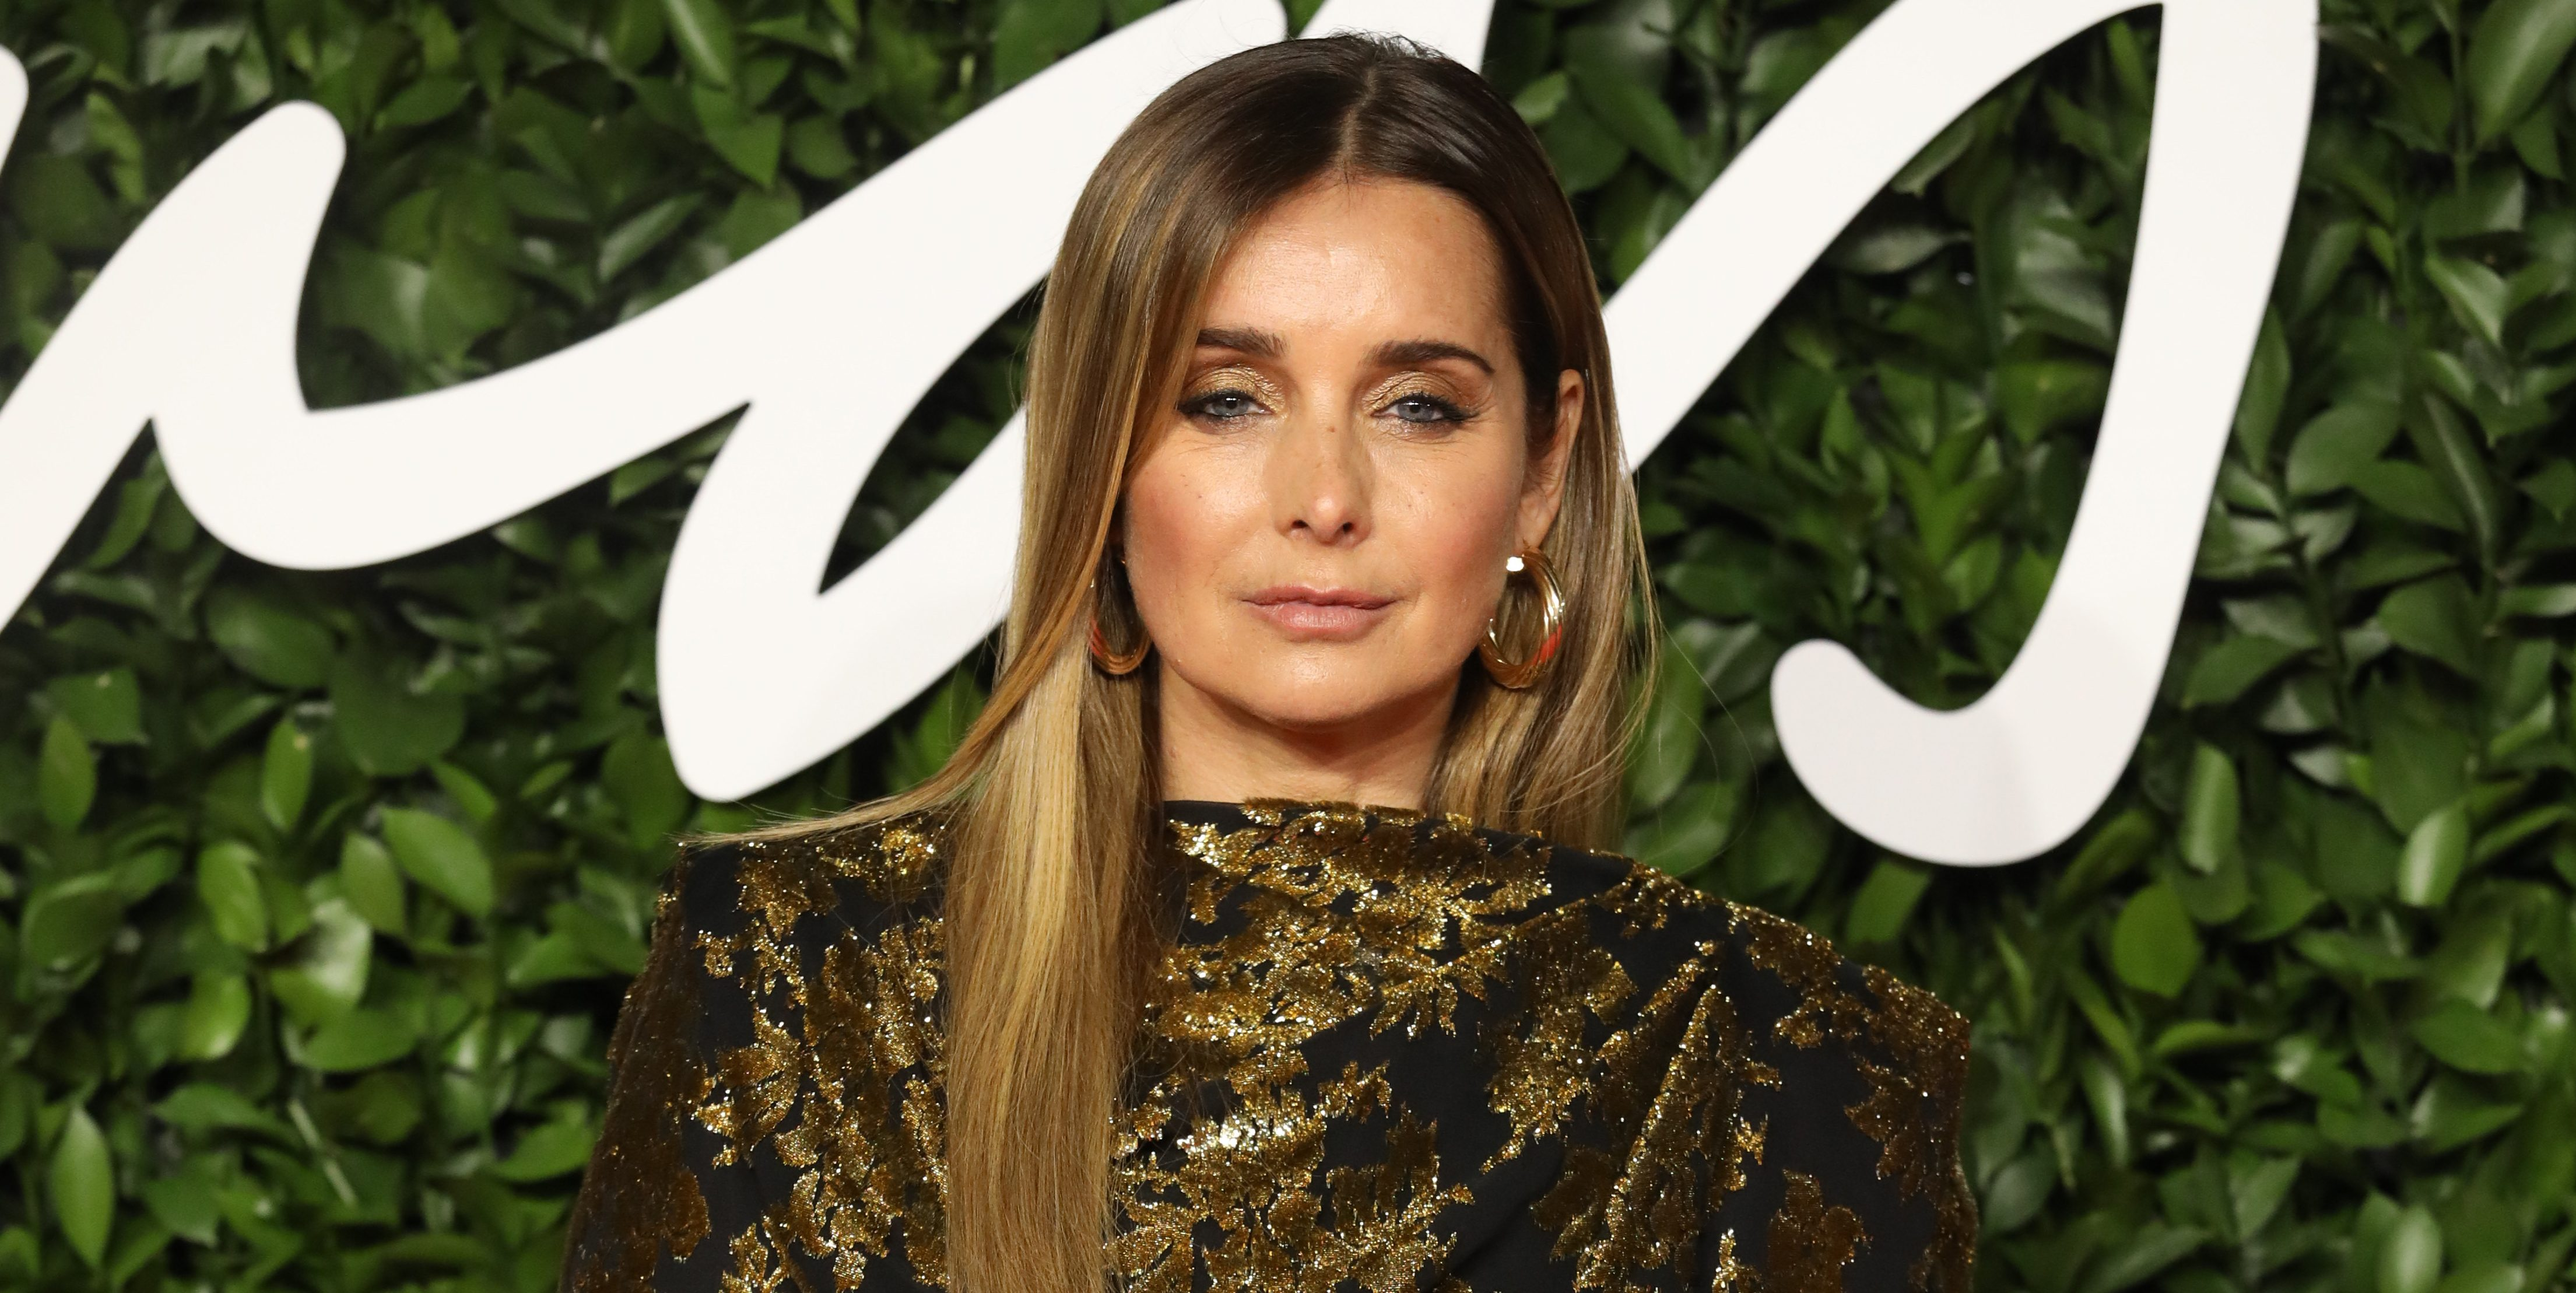 Celebrities Attending The Fashion Awards 2019 At The Royal Albert Hall In London Pictured: Louise Redknapp Ref: SPL5132888 021219 NON-EXCLUSIVE Picture by: Brett D. Cove / SplashNews.com Splash News and Pictures Los Angeles: 310-821-2666 New York: 212-619-2666 London: +44 (0)20 7644 7656 Berlin: +49 175 3764 166 photodesk@splashnews.com World Rights